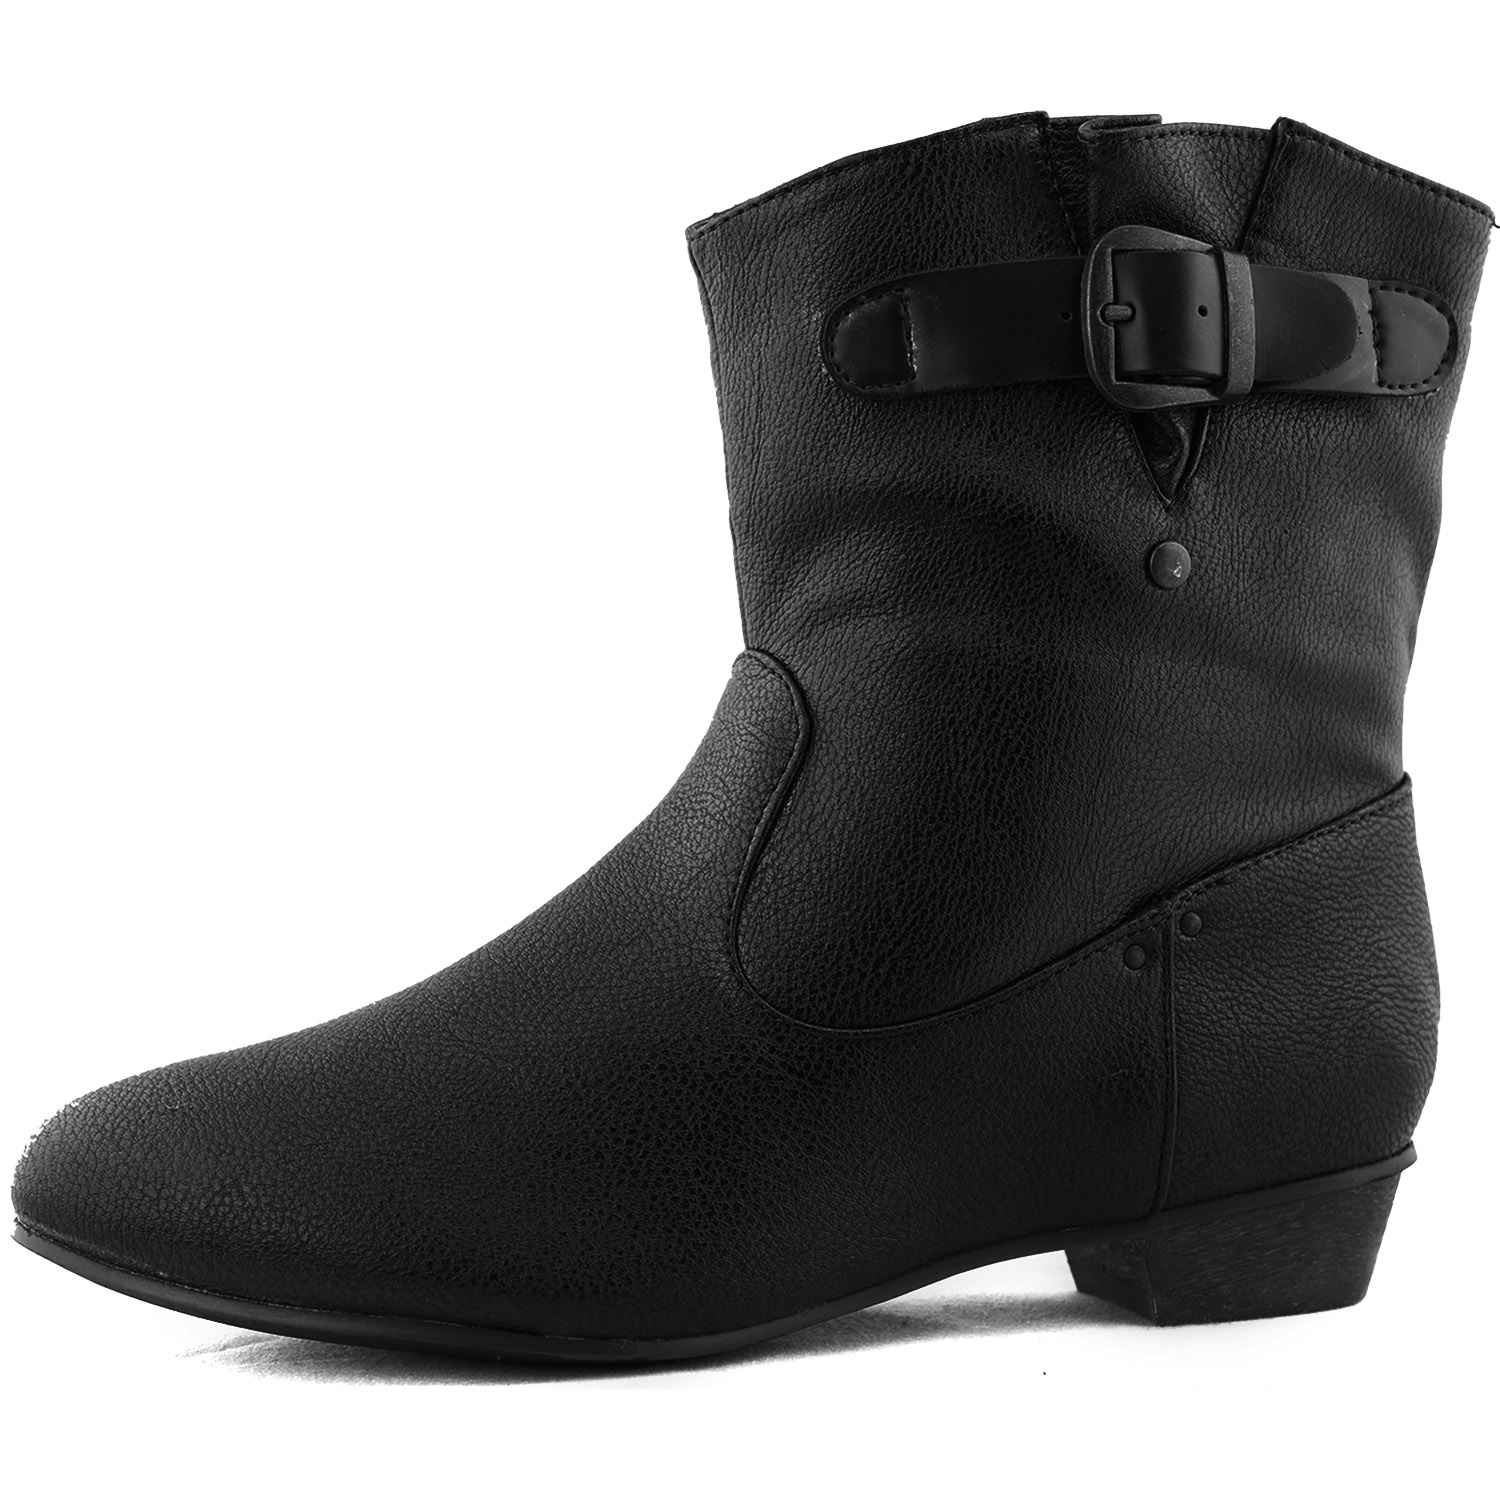 Black ankle high booties walkable round toe thick kitten heel cowboy